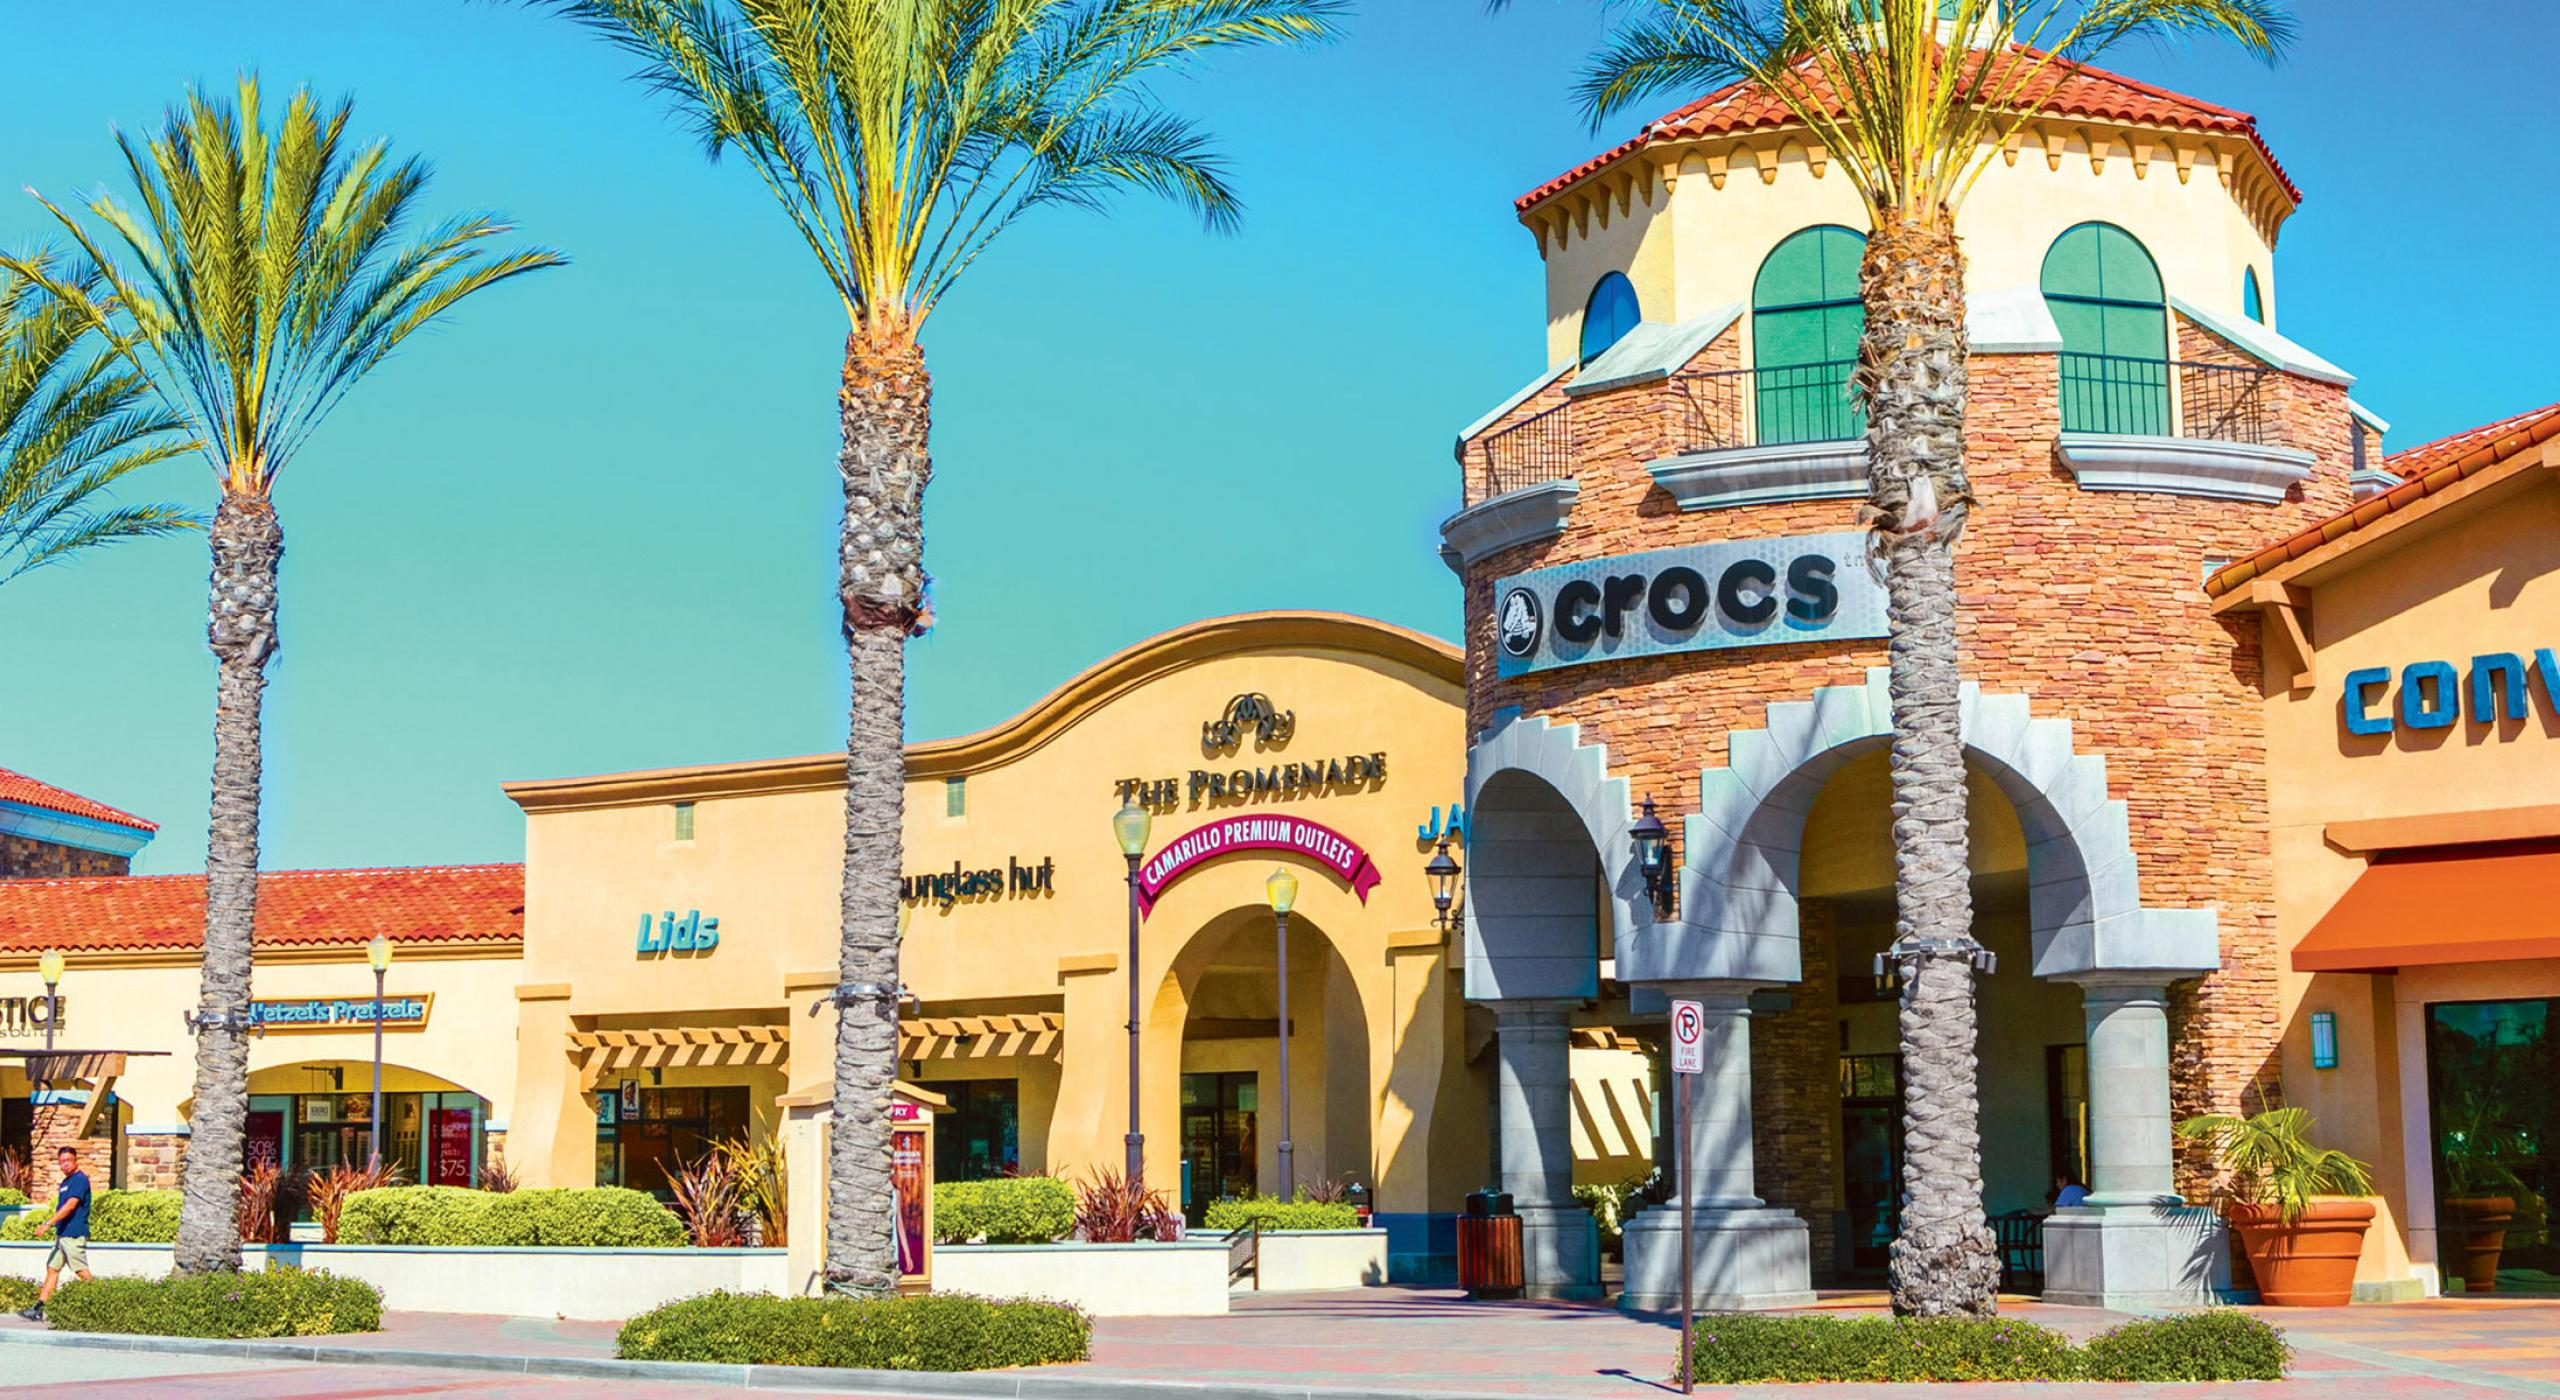 visit camarillo for shopping museums